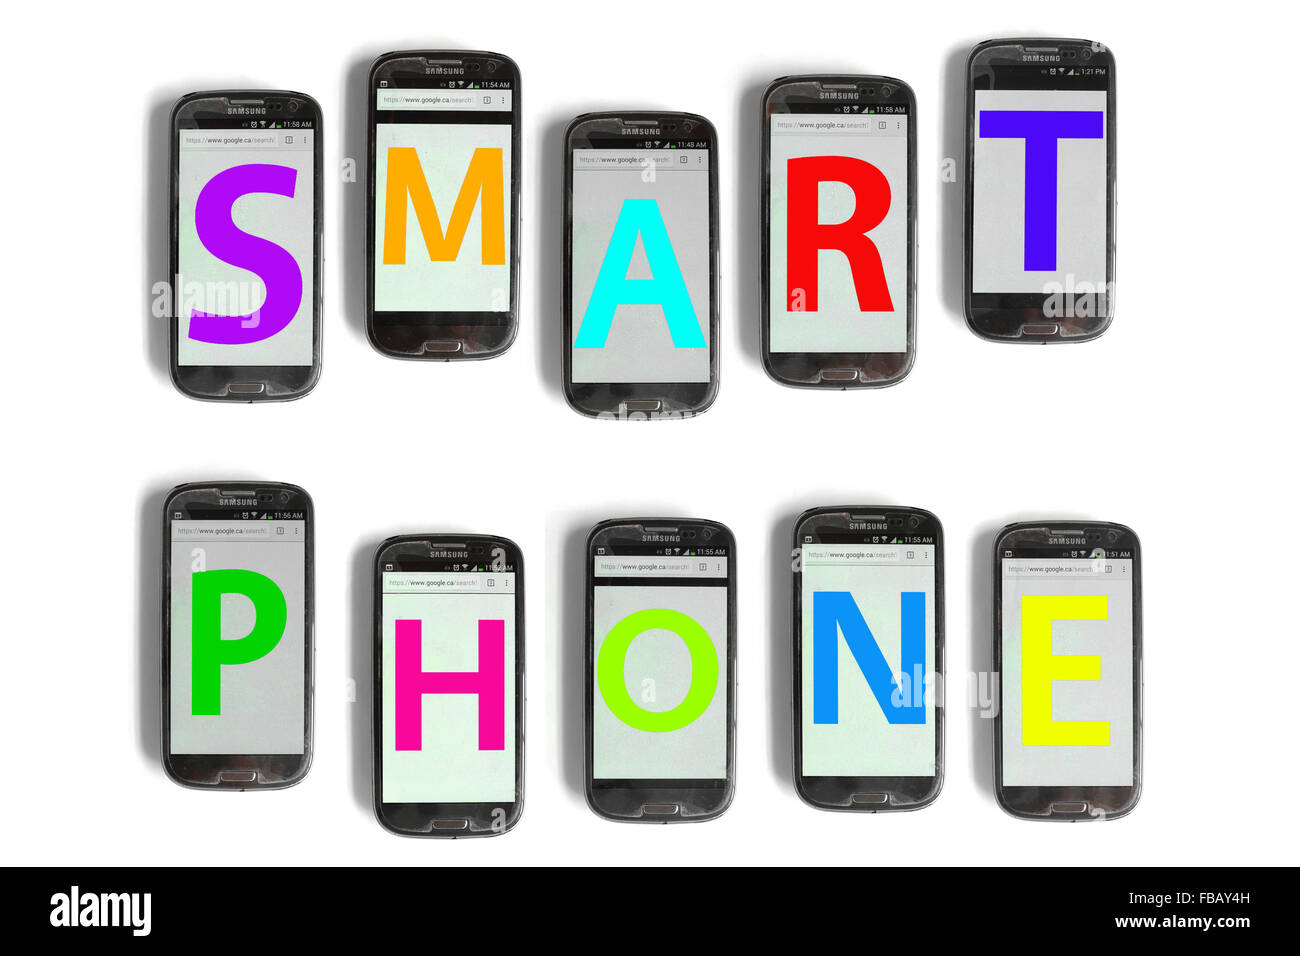 Smart Phone spelled out on mobile phone screens photographed against a white background. - Stock Image